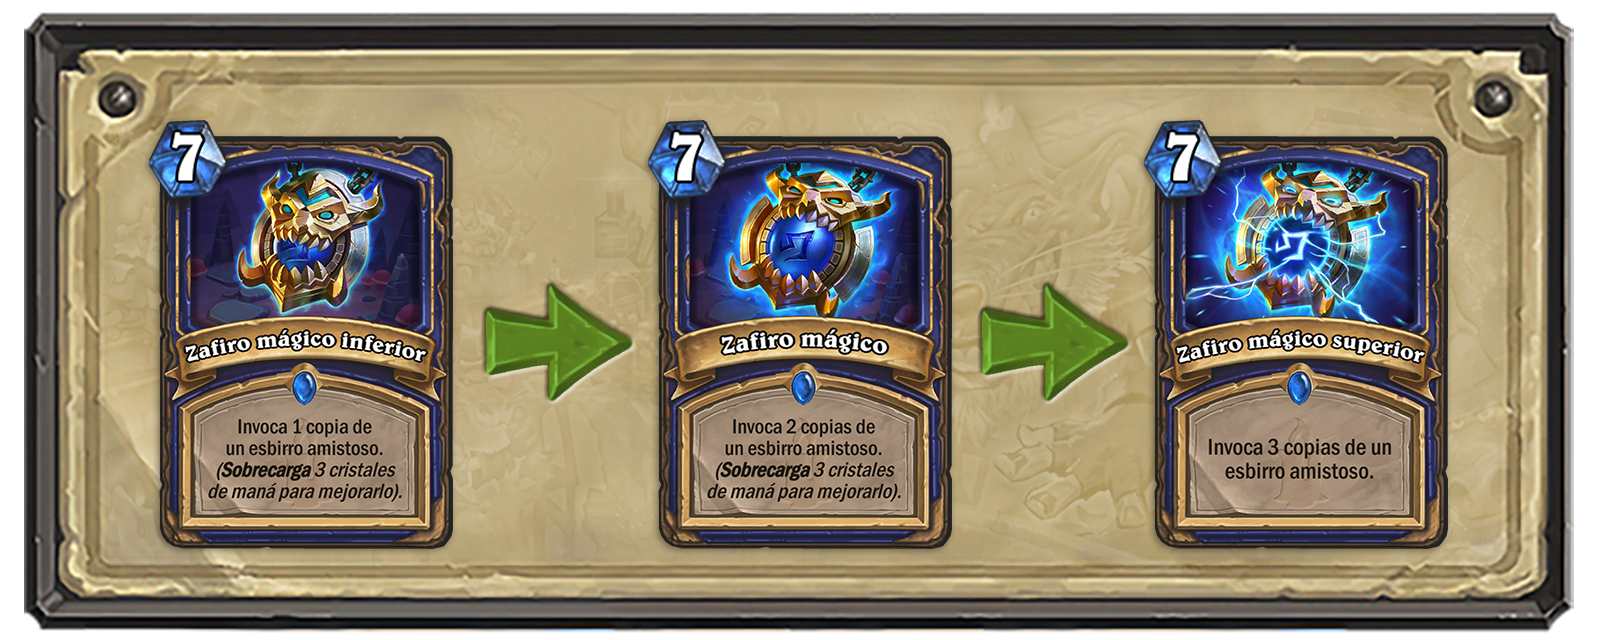 esES_Cards_HS_Sapphire_LW_1000x690.png